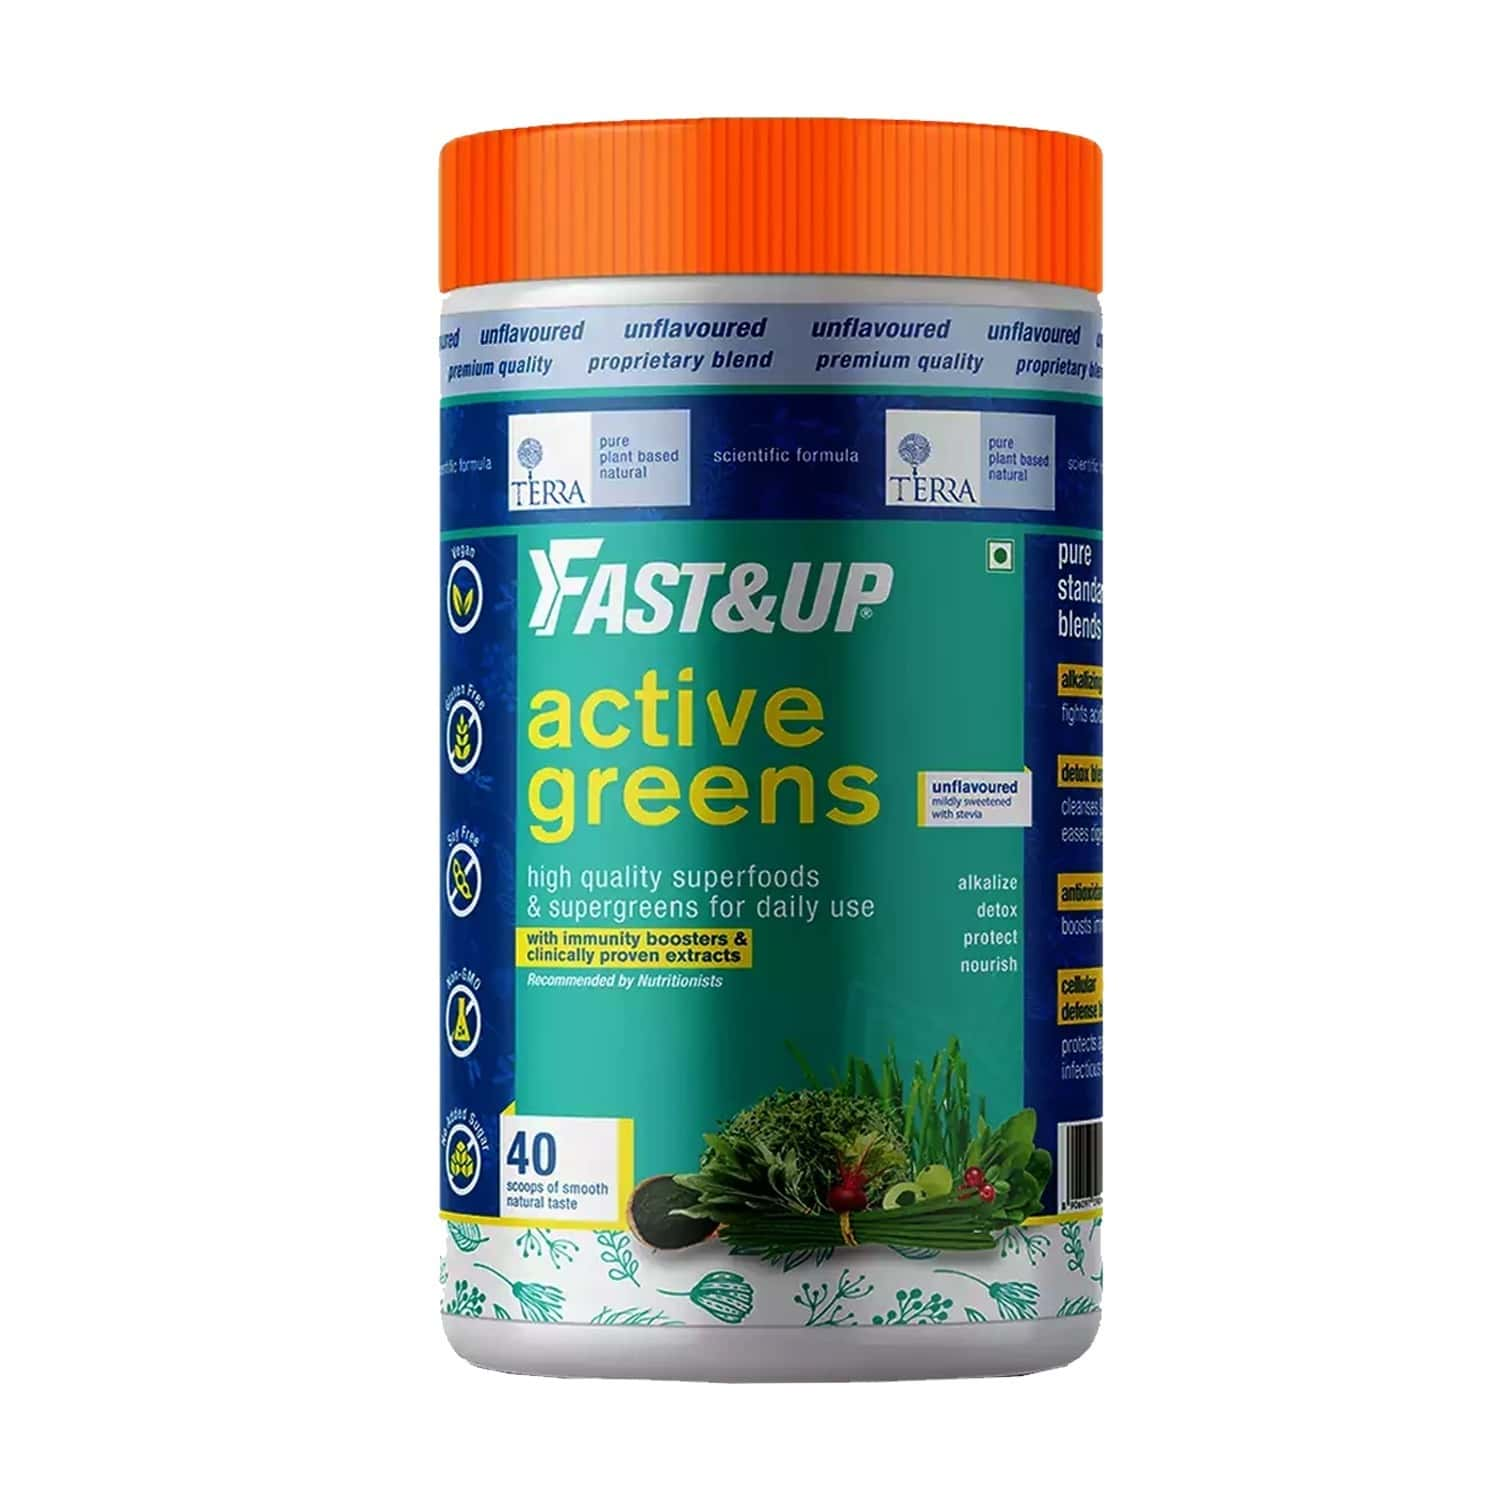 Fast&up Terra - Active Greens - 40 Scoops - 280 G